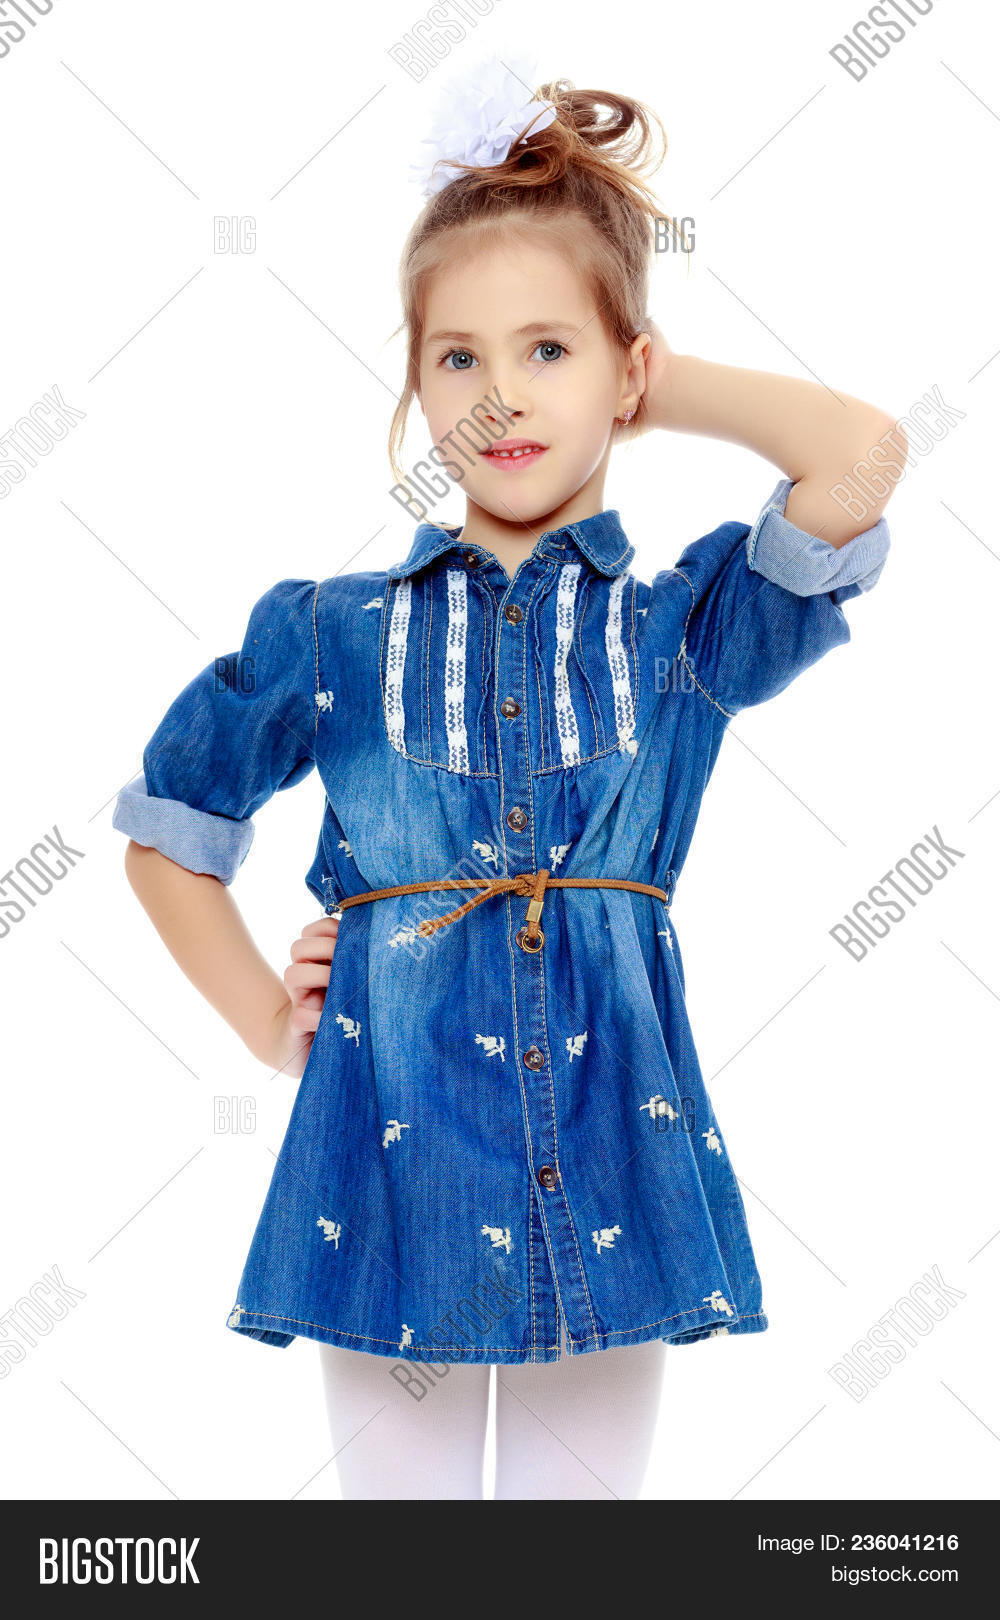 9ee64fa91ca The little blonde girl with a large white bow on the head and short denim  dress.She holds a finger to his cheek.Isolated on white background.